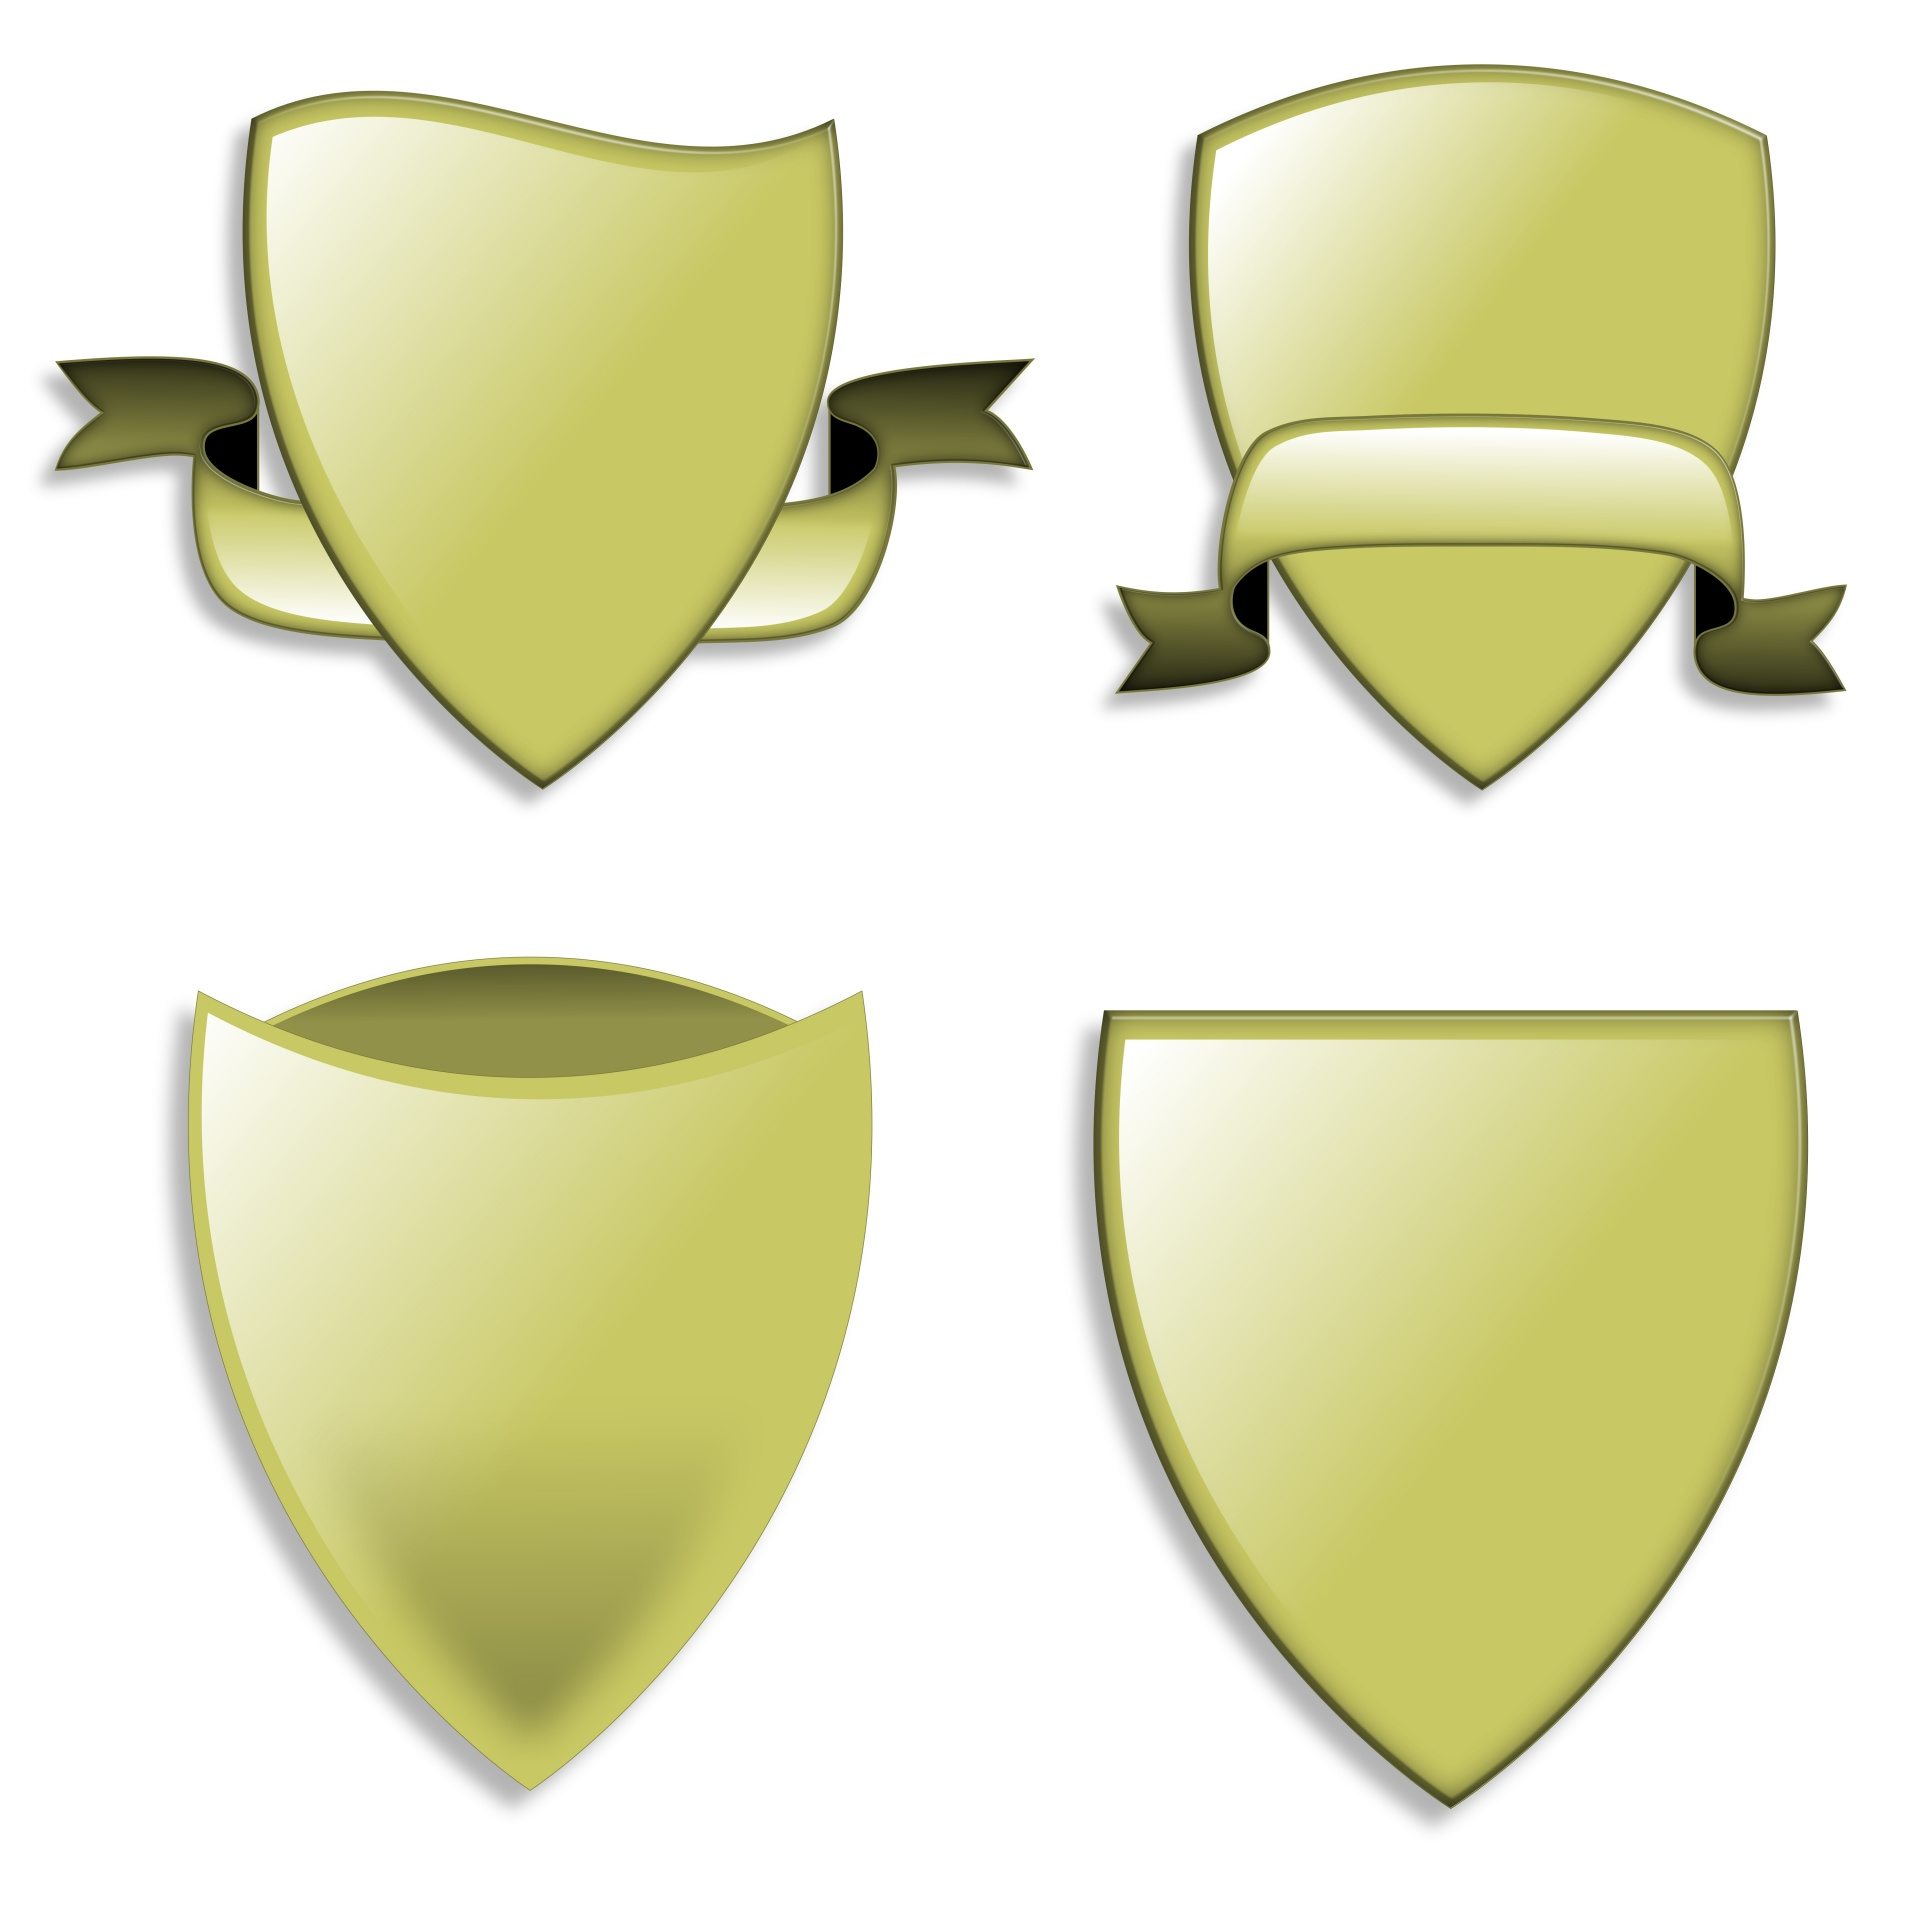 1920x1920 Green Shields Free Stock Photo